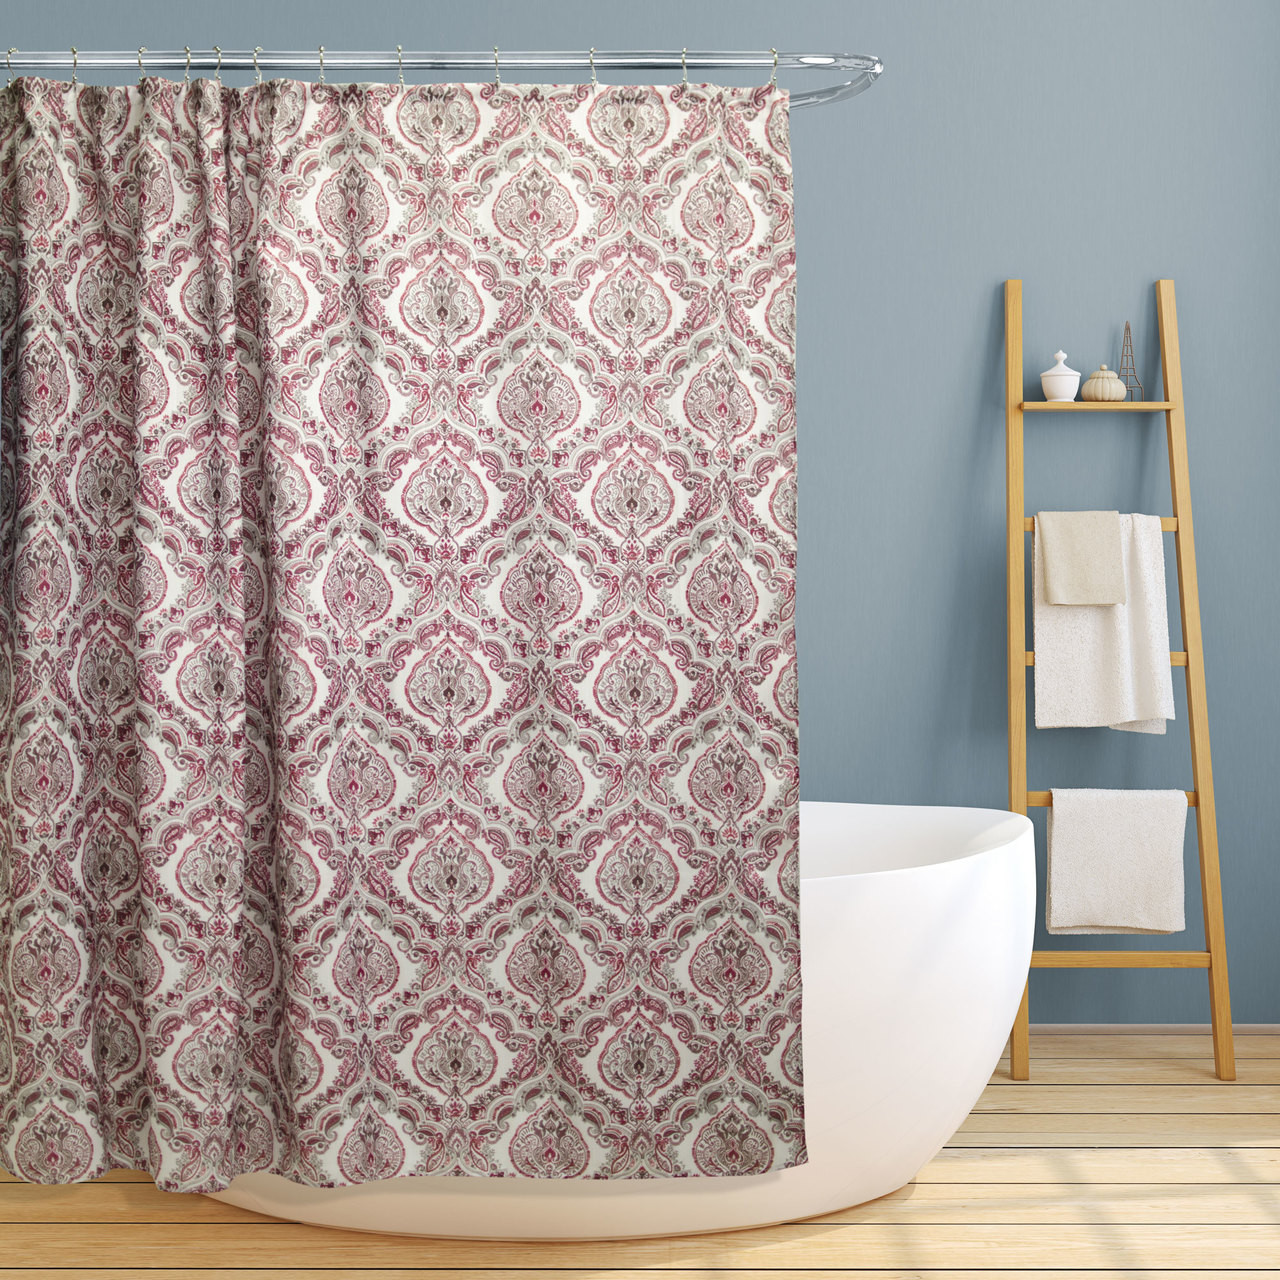 sequin the minimalist liner and size goldr stupendous enchanting for of shower design gold glitter extra image full curtain rose long curtainsrose curtains bathroom roses